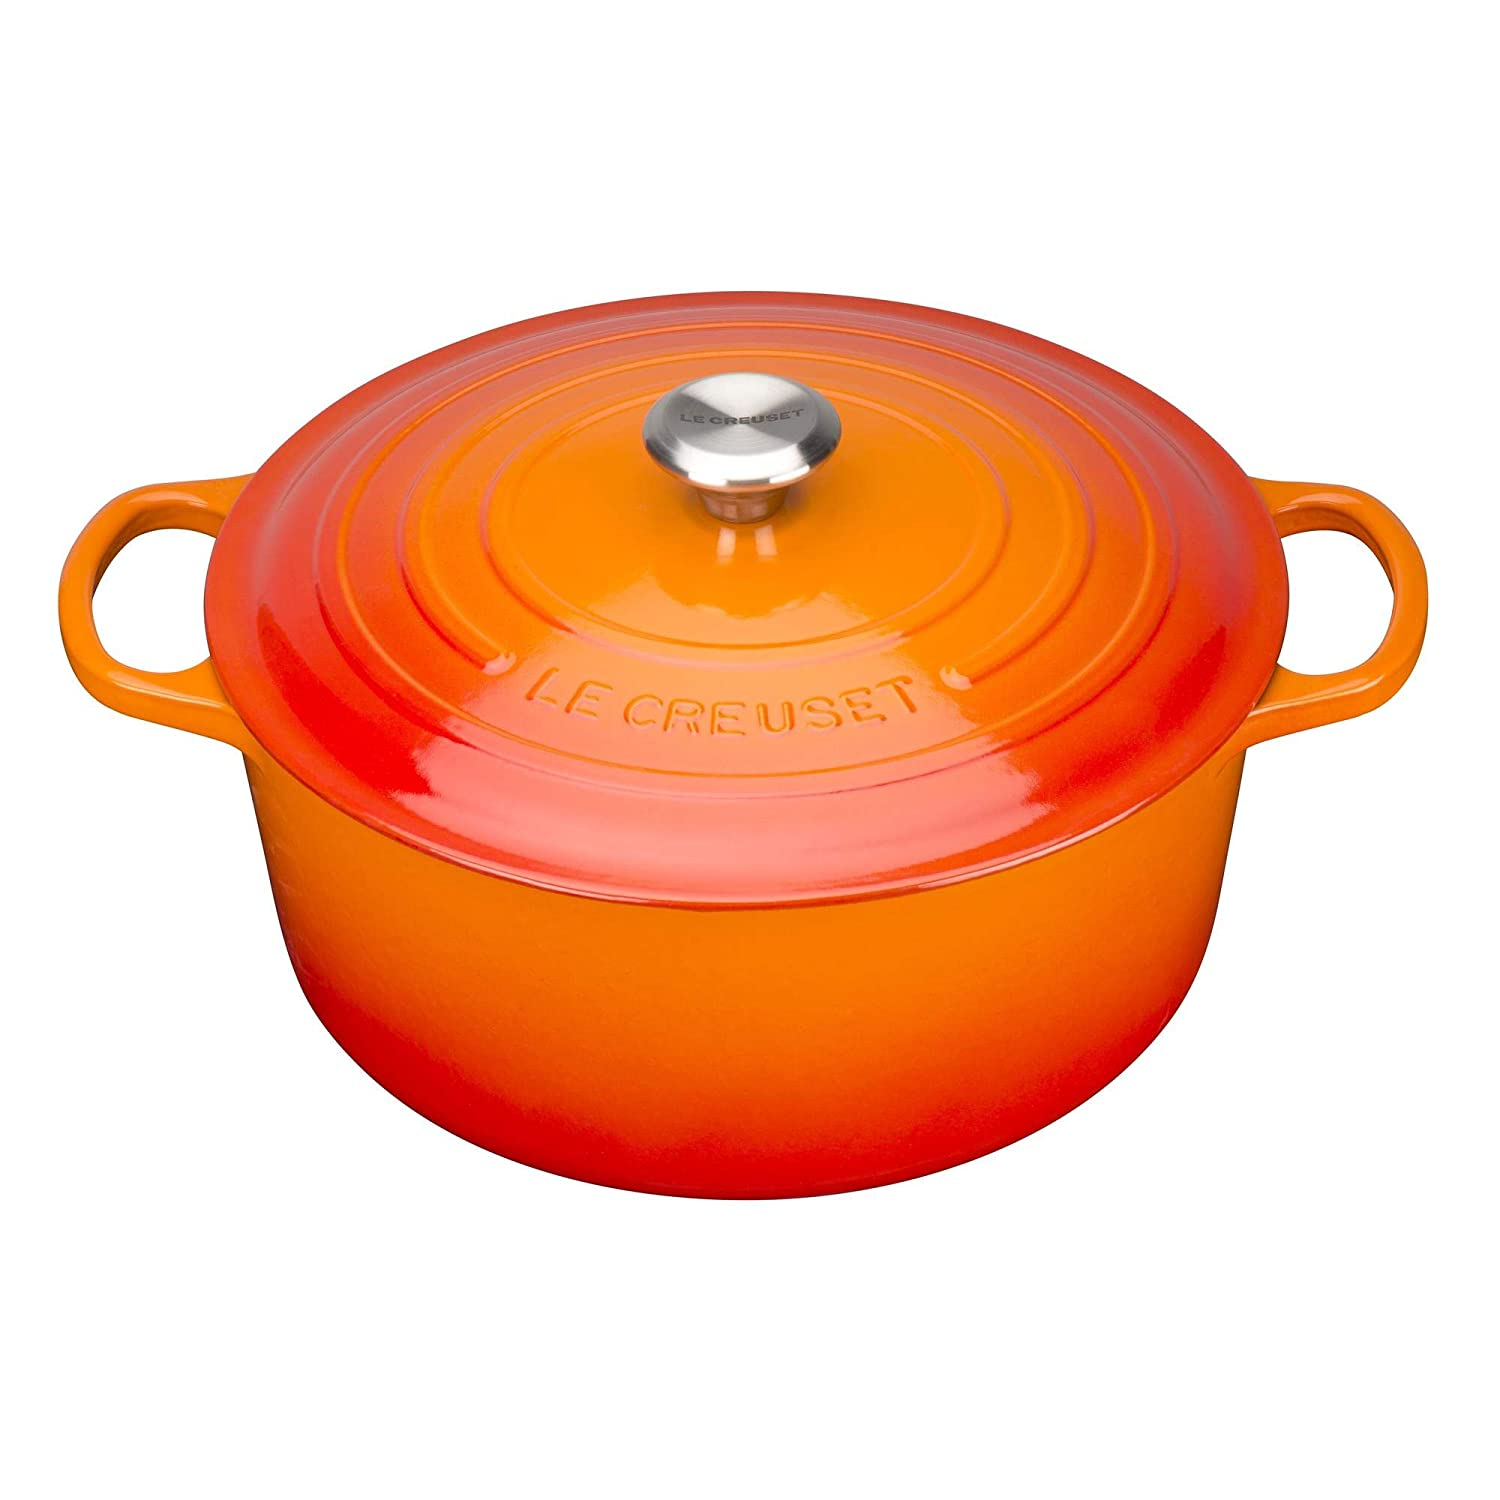 Le Creuset Signature Cast Iron Round Casserole with Cool Tool, 20 cm - Cerise